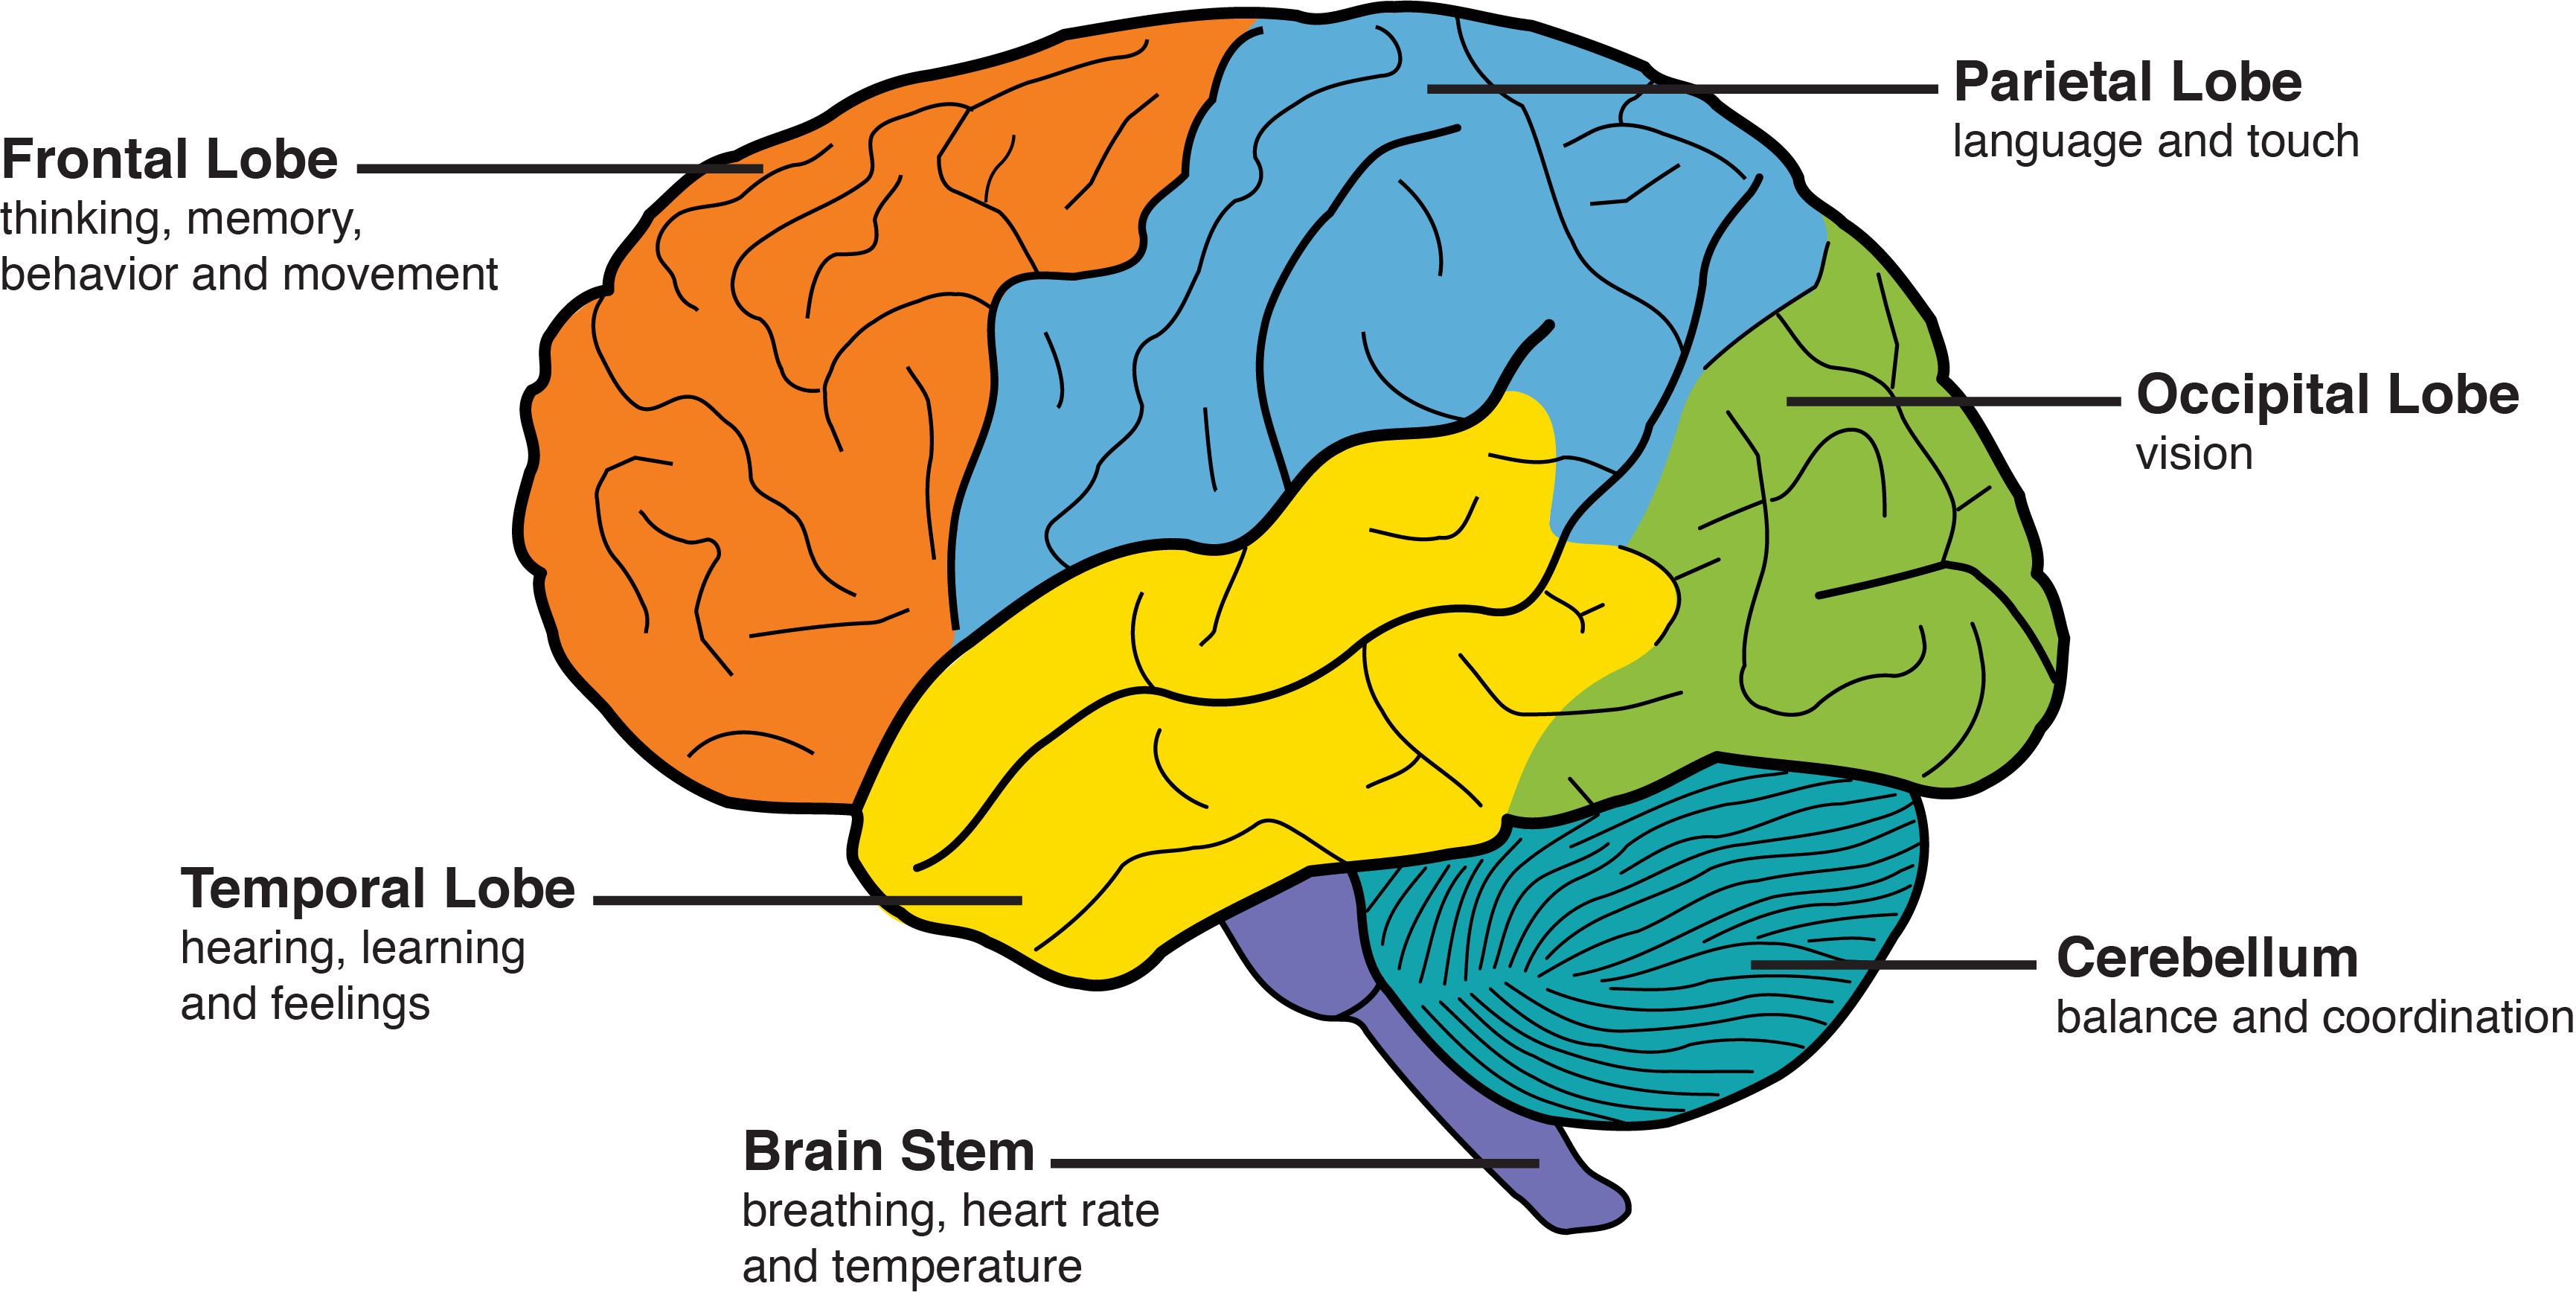 Areas Of The Brain Labeled With Their Major Functions Frontal Lobes Thinking Memory Behavior Movement Temporal Lobes Fight Dementia Dementia Frontal Lobe